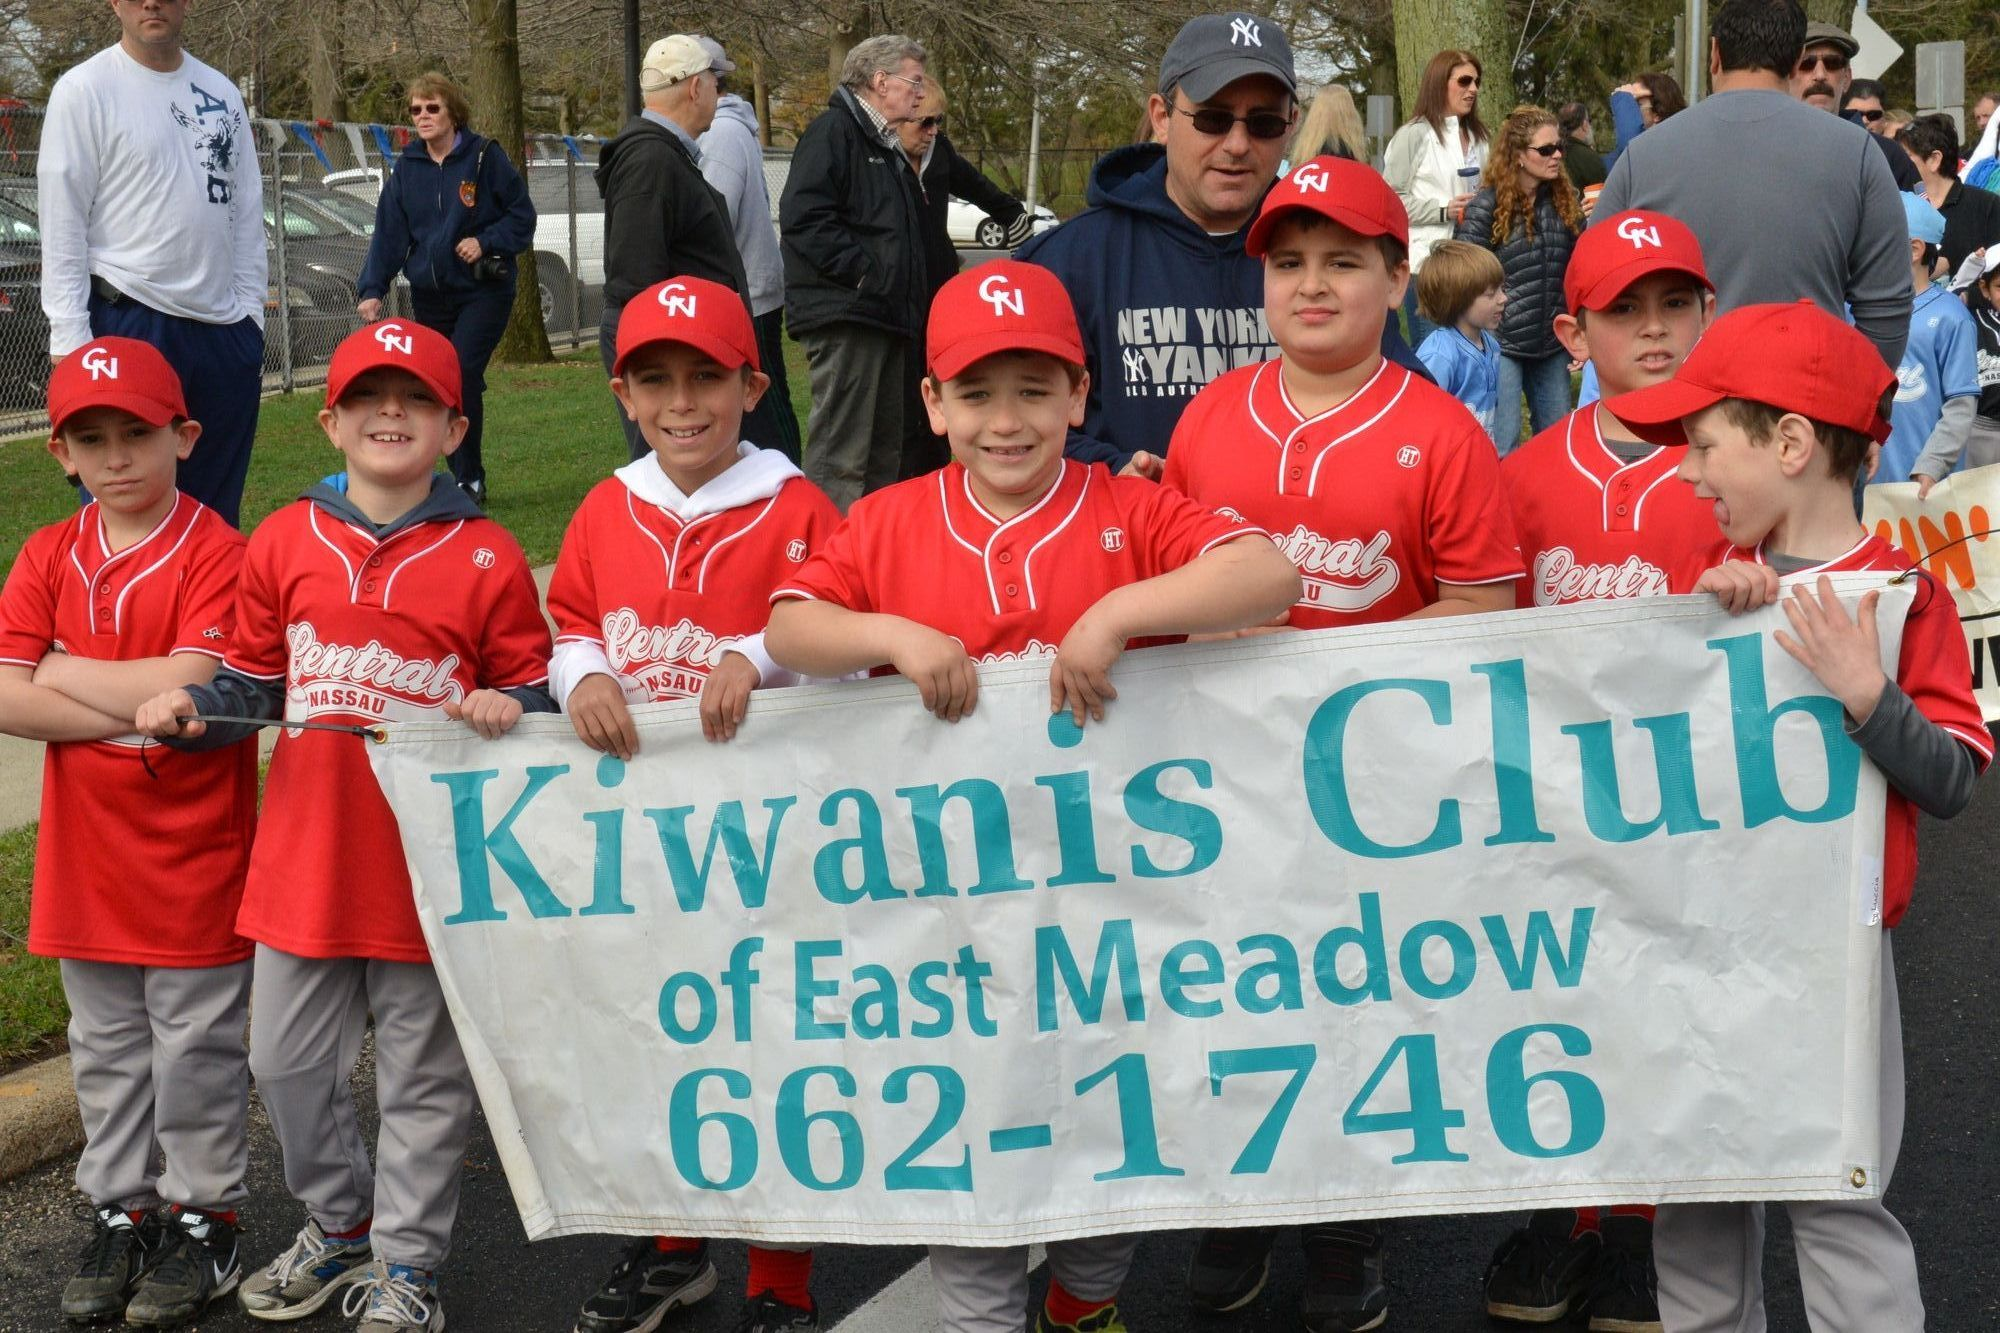 These excited marchers were sponsored by the East Meadow Kiwanis Club.